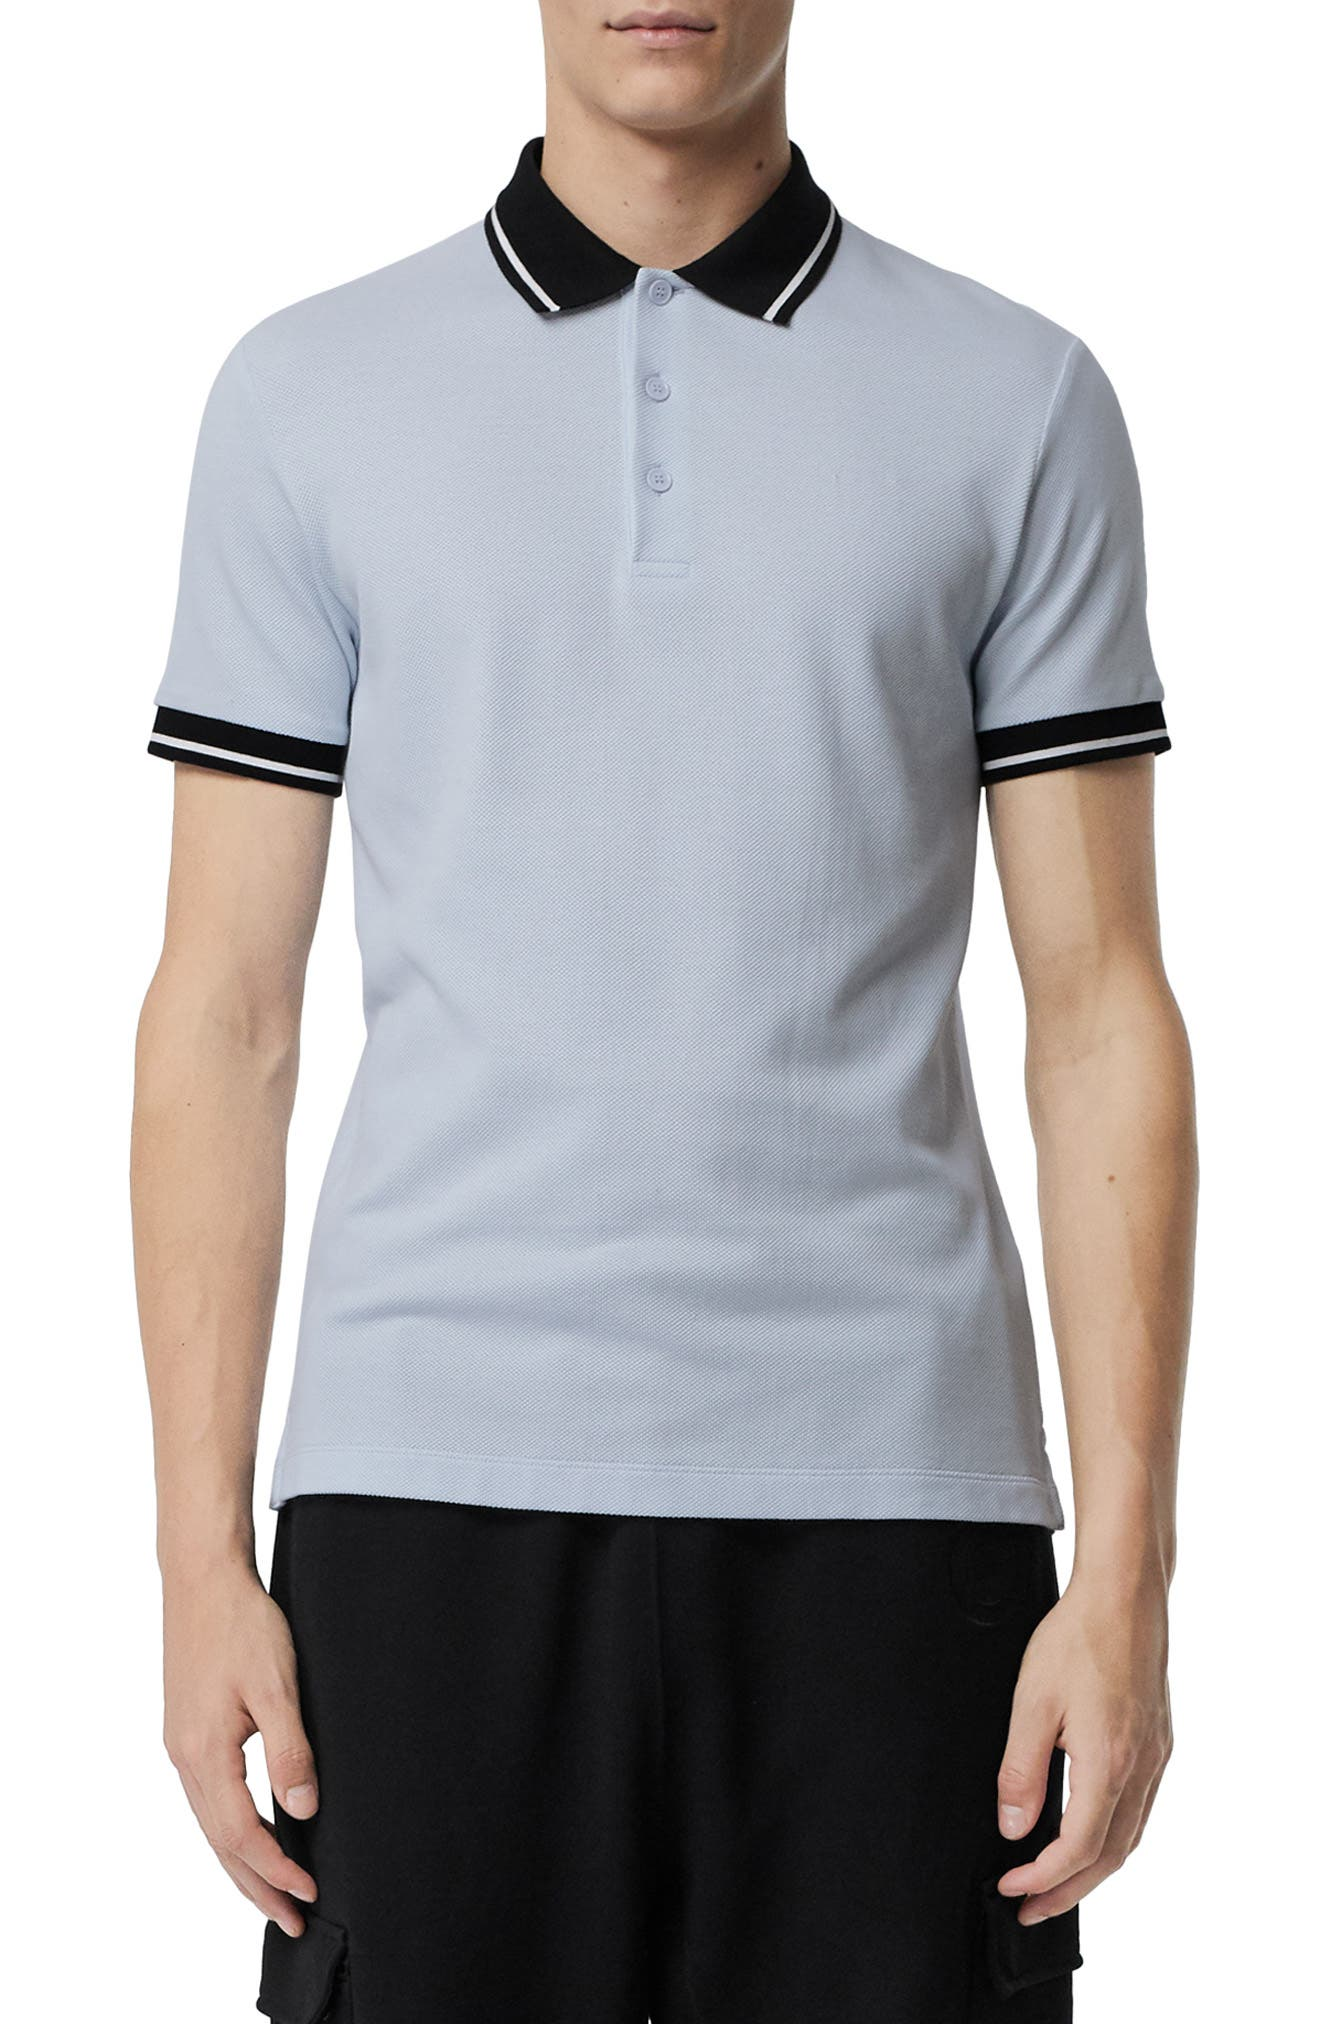 amp; Burberry Nordstrom Shirts Men's Clothing HSwqXapx